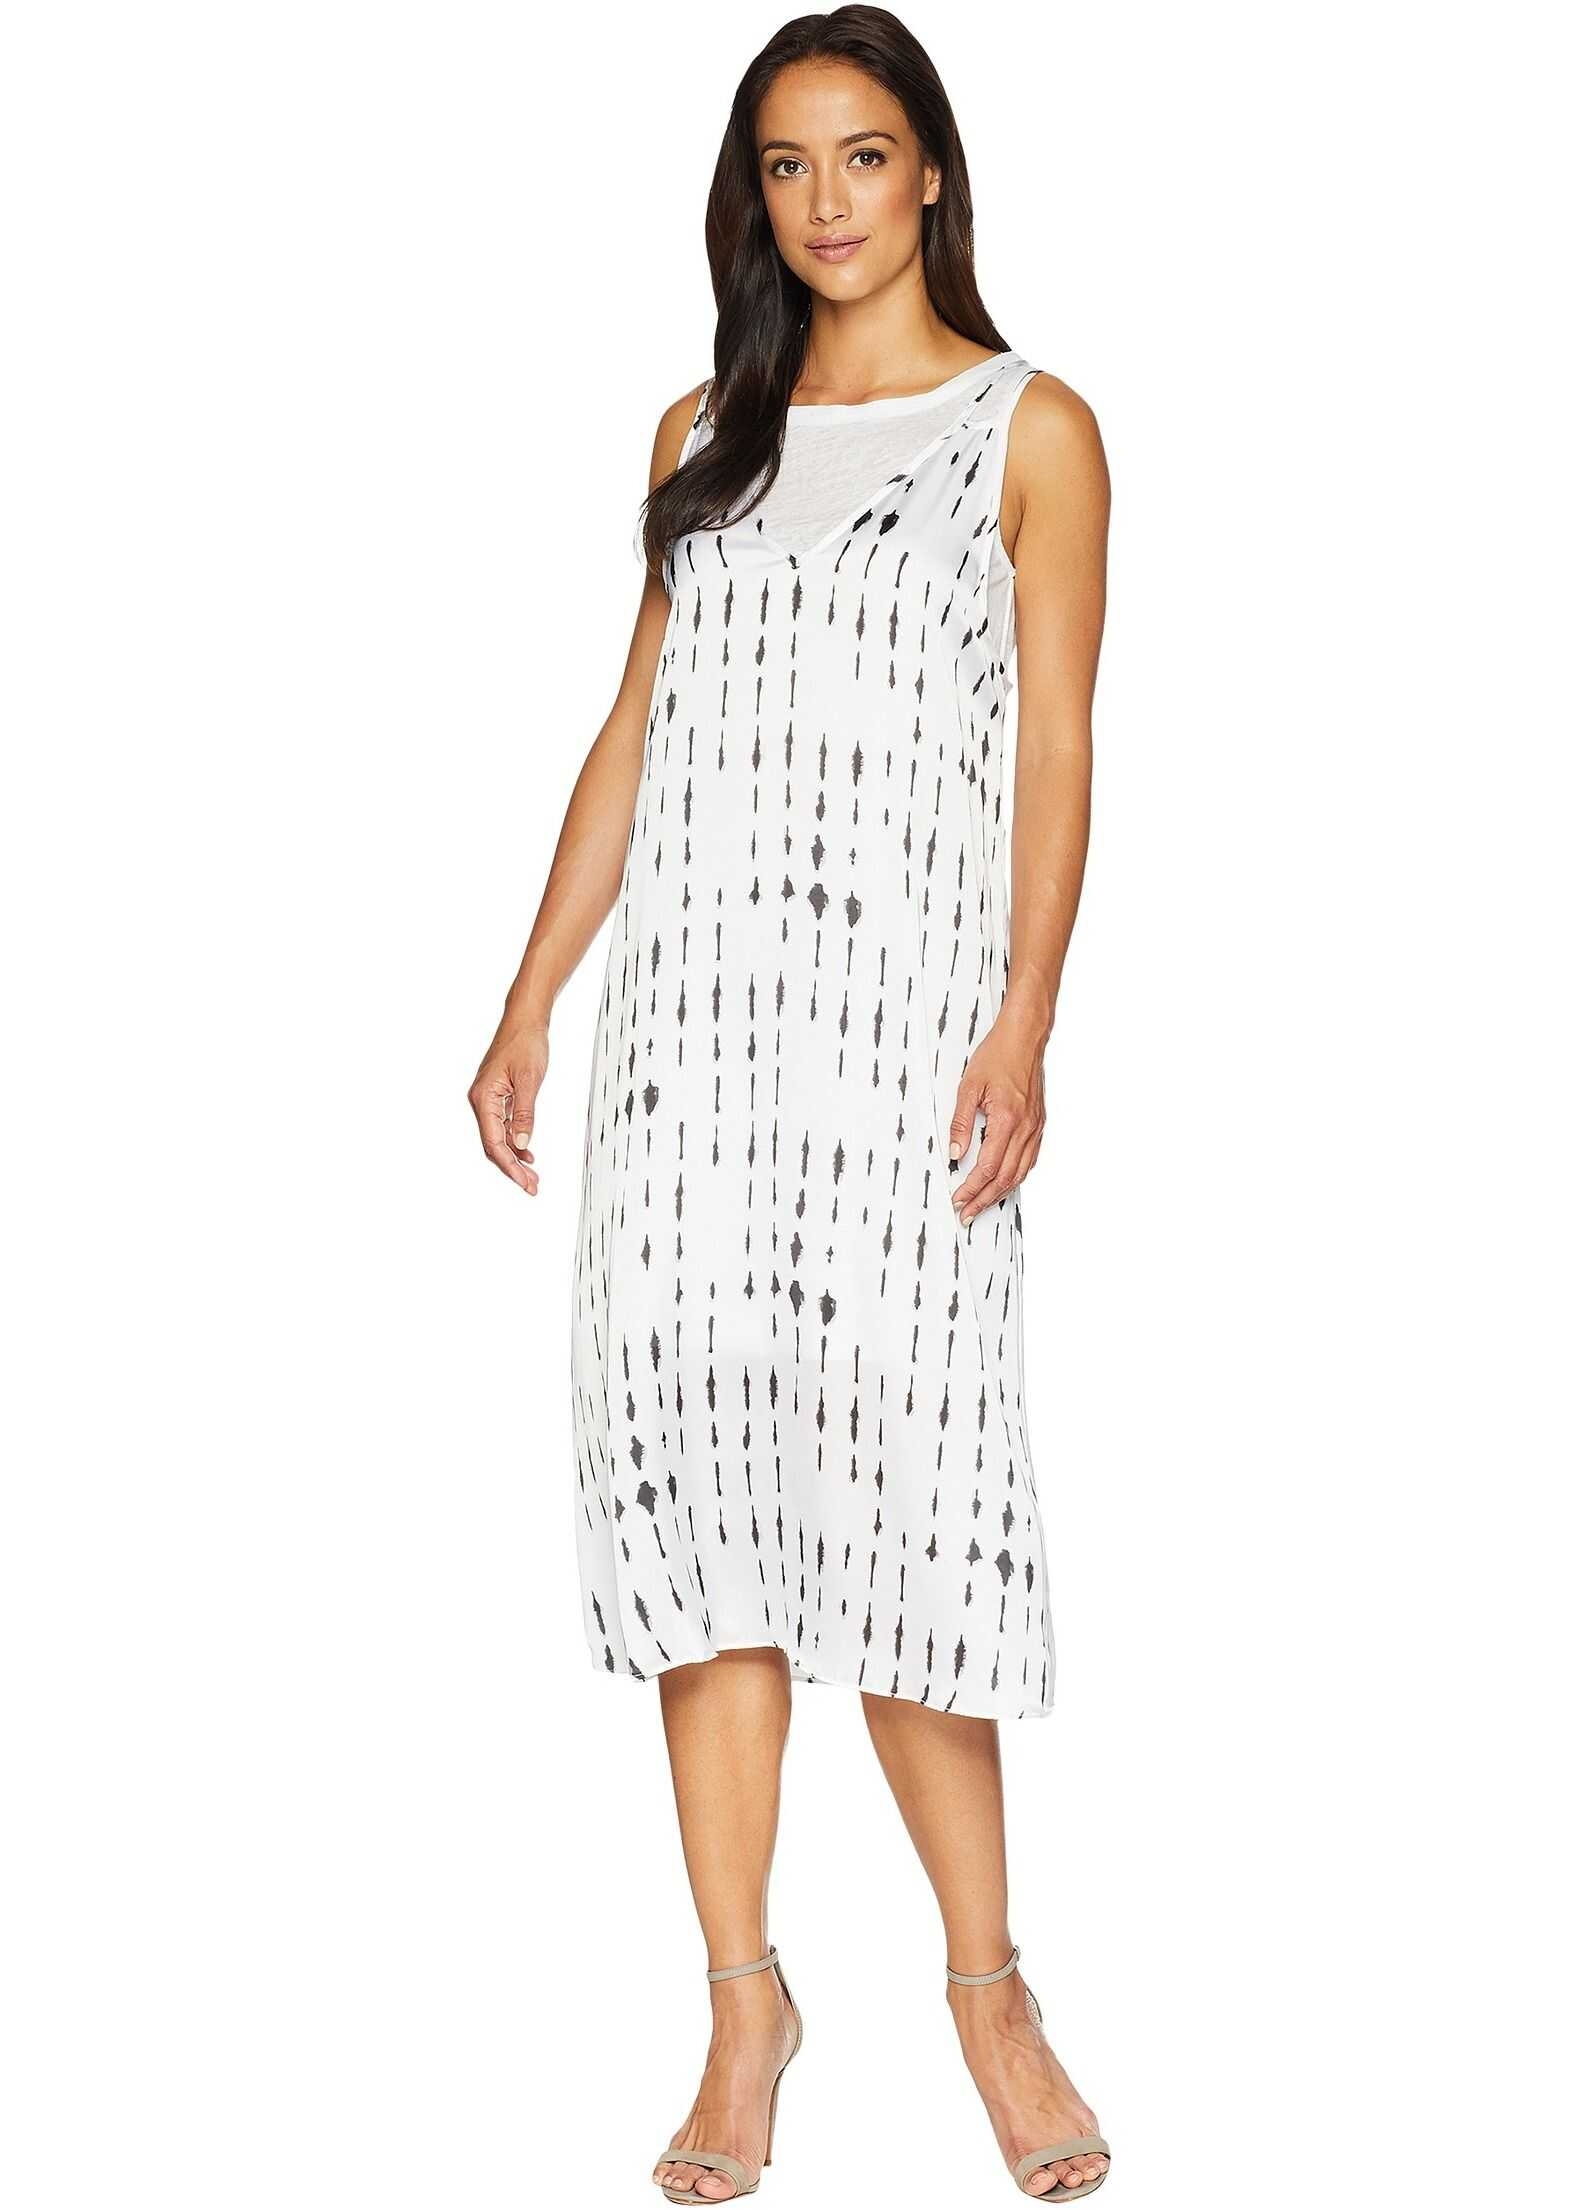 Kenneth Cole New York 2 Layered Tank Dress Inkwell/White Combo